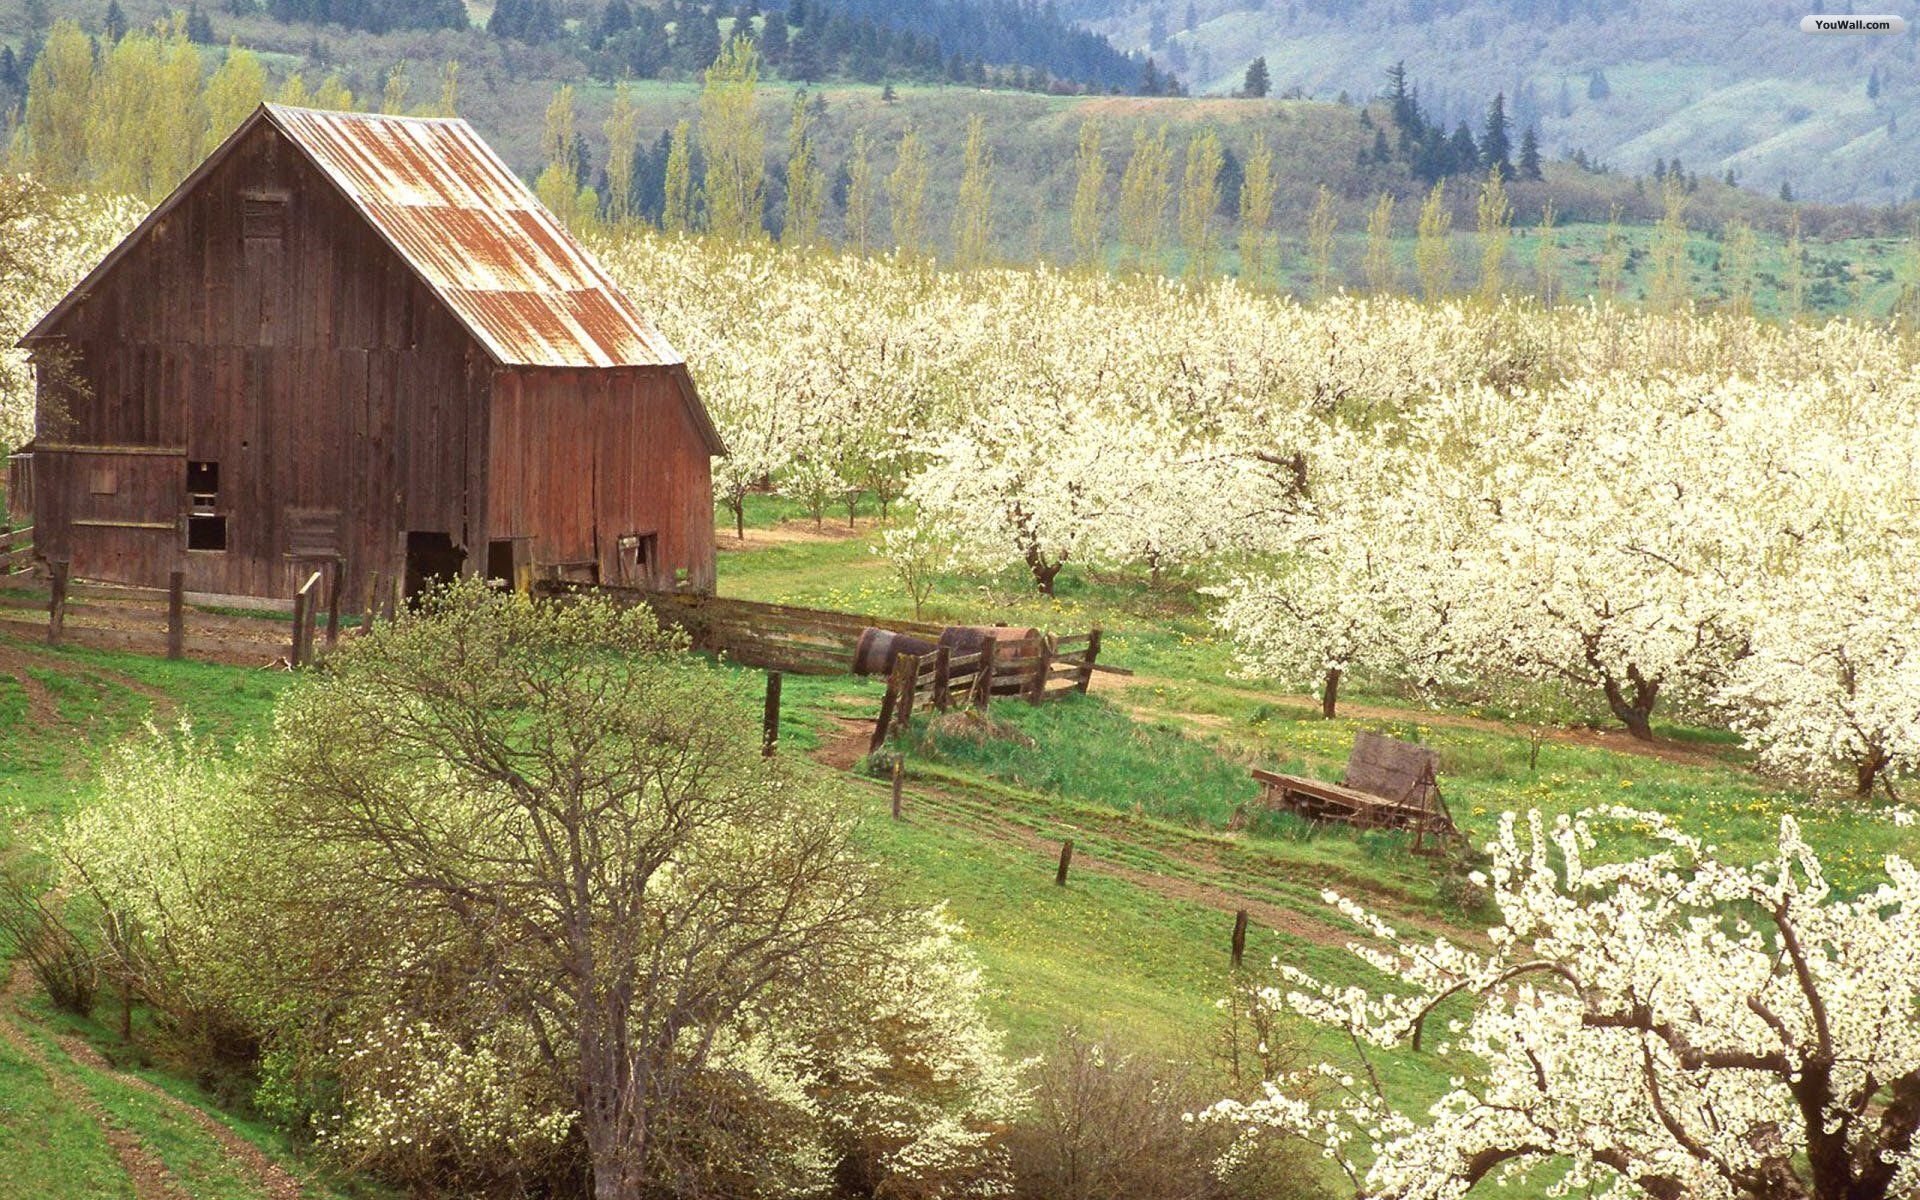 Wallpaper Spring Wallpapers High Fields Youwall Resolution Flower Little Quality Spring Wallpaper Old Barns Spring Scene